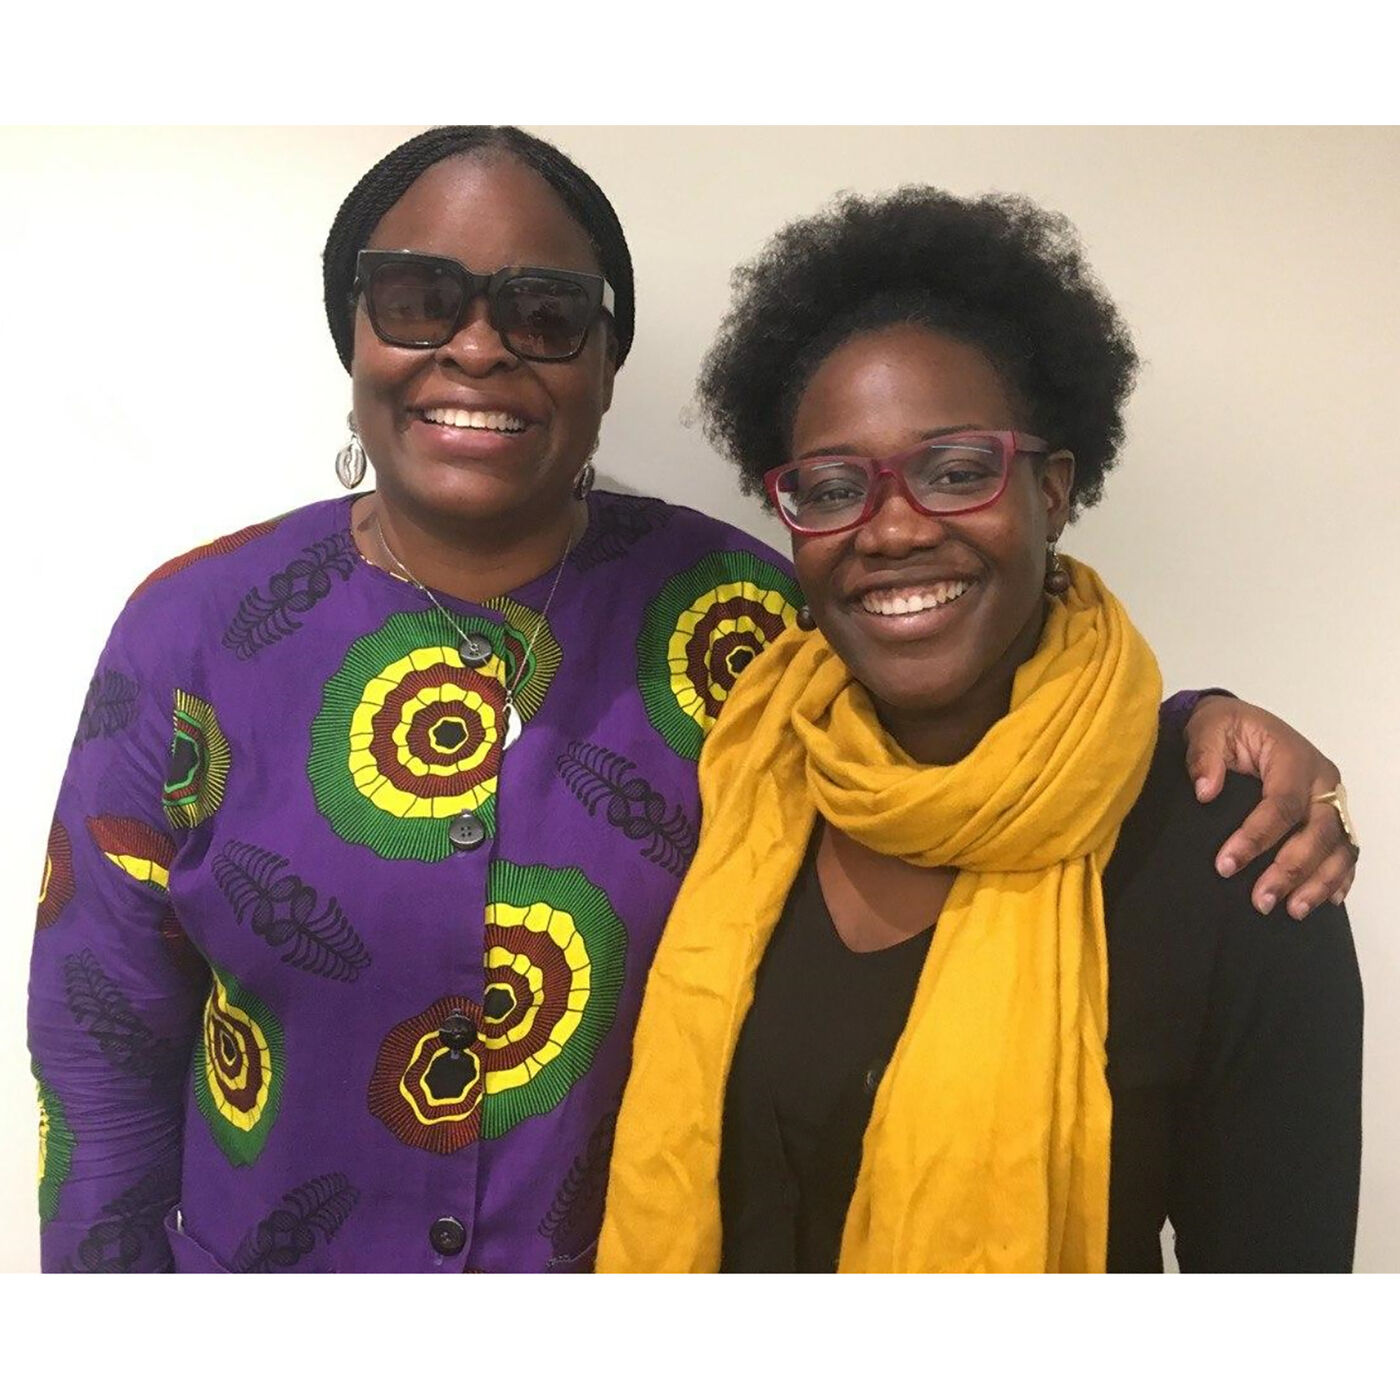 S01 E03 - Dr. Roberta K. Timothy discusses how connection to her African heritage helps her to resist Anti-Black Racism